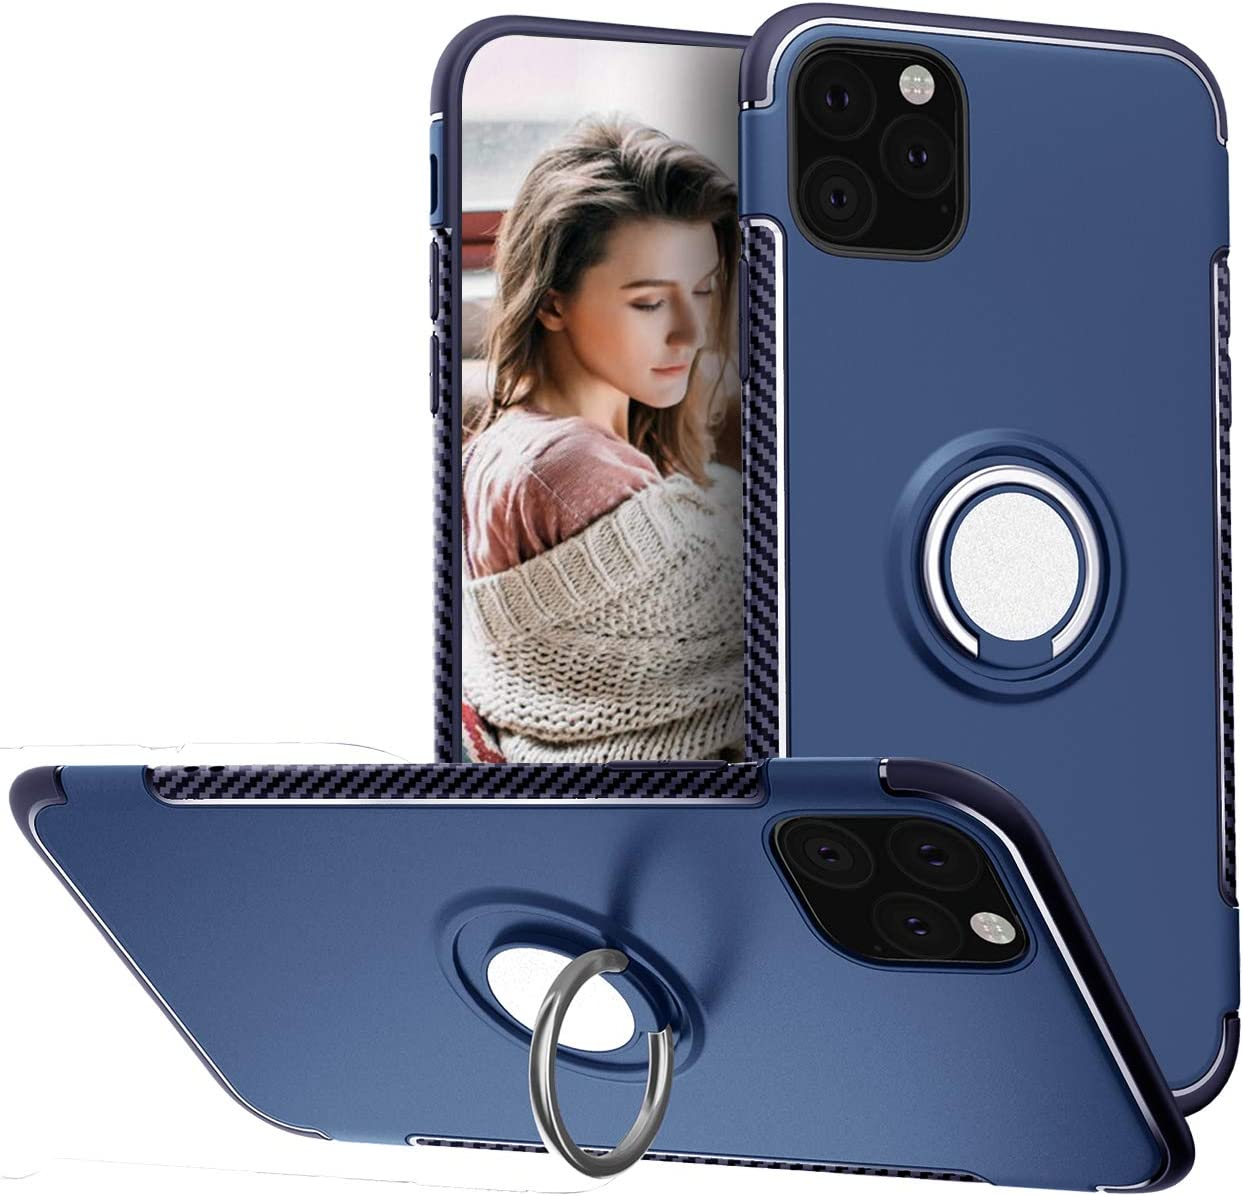 iPhone 11 Pro Max Case 6.5 Inch 2019 Release, 360 Degree Adjustable Ring Grip Stand Hybrid 2 in 1 [Compatible with Magnetic Car Mount] Slim Protective Case Cover for Apple iPhone 11 Pro Max,Blue